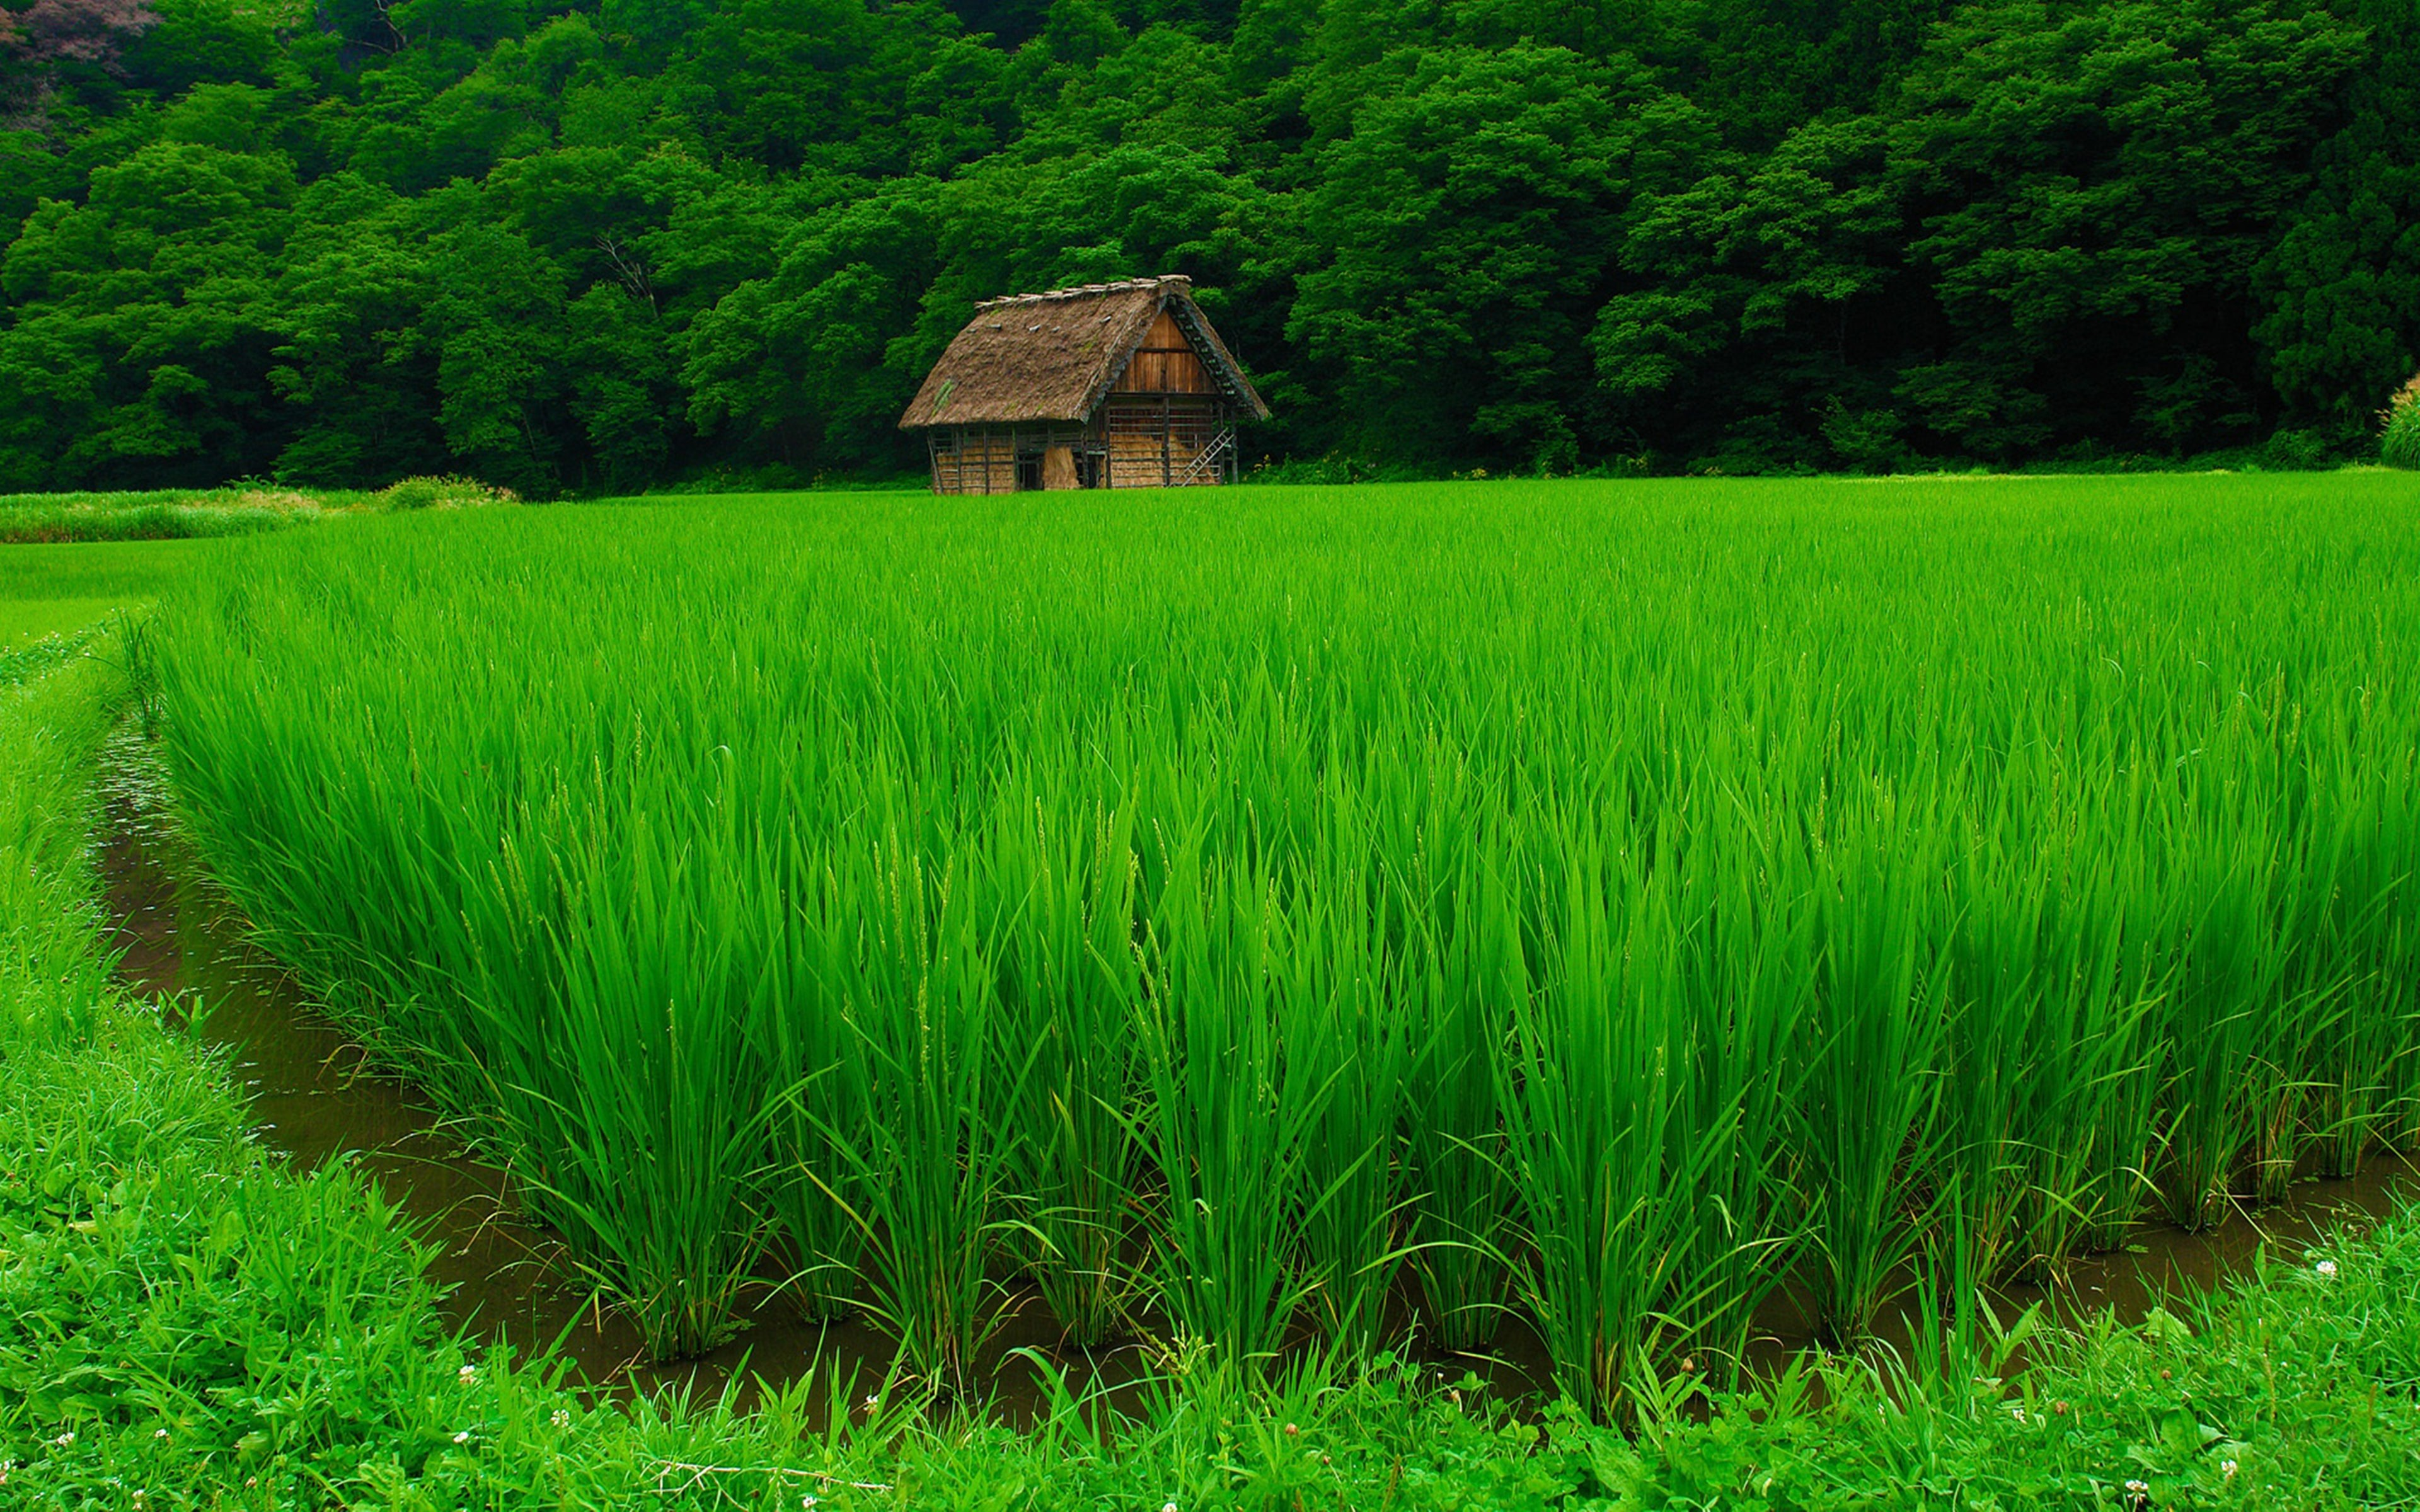 fields grass nature houses jungle forest green landscapes Agriculture countryside trees